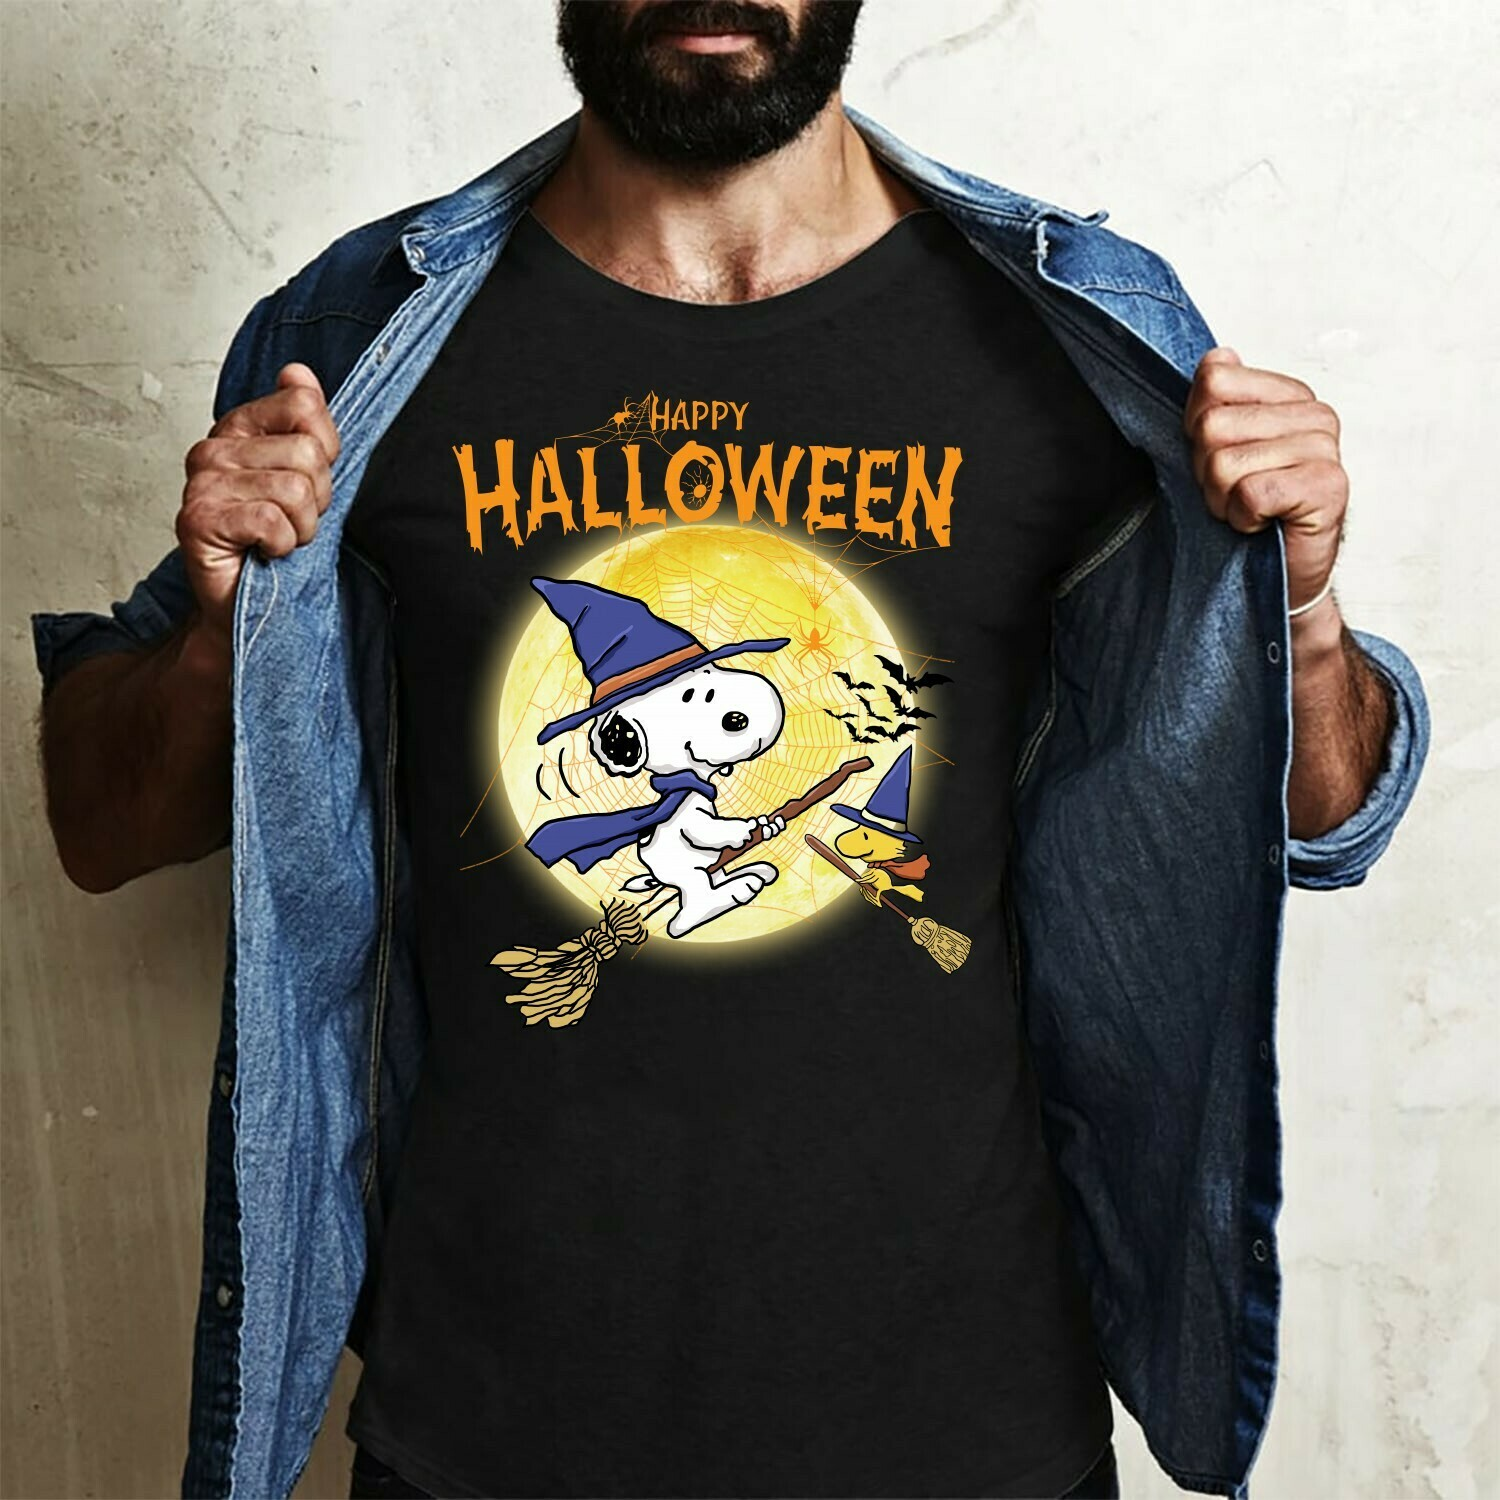 Snoopy Witch And Peanuts In The Moonlight Trick Or Treat Halloween Costume Gifts Idea For Best Friend Family Party Vacation T-Shirt Long Sleeve Sweatshirt Hoodie Jolly Family Gifts